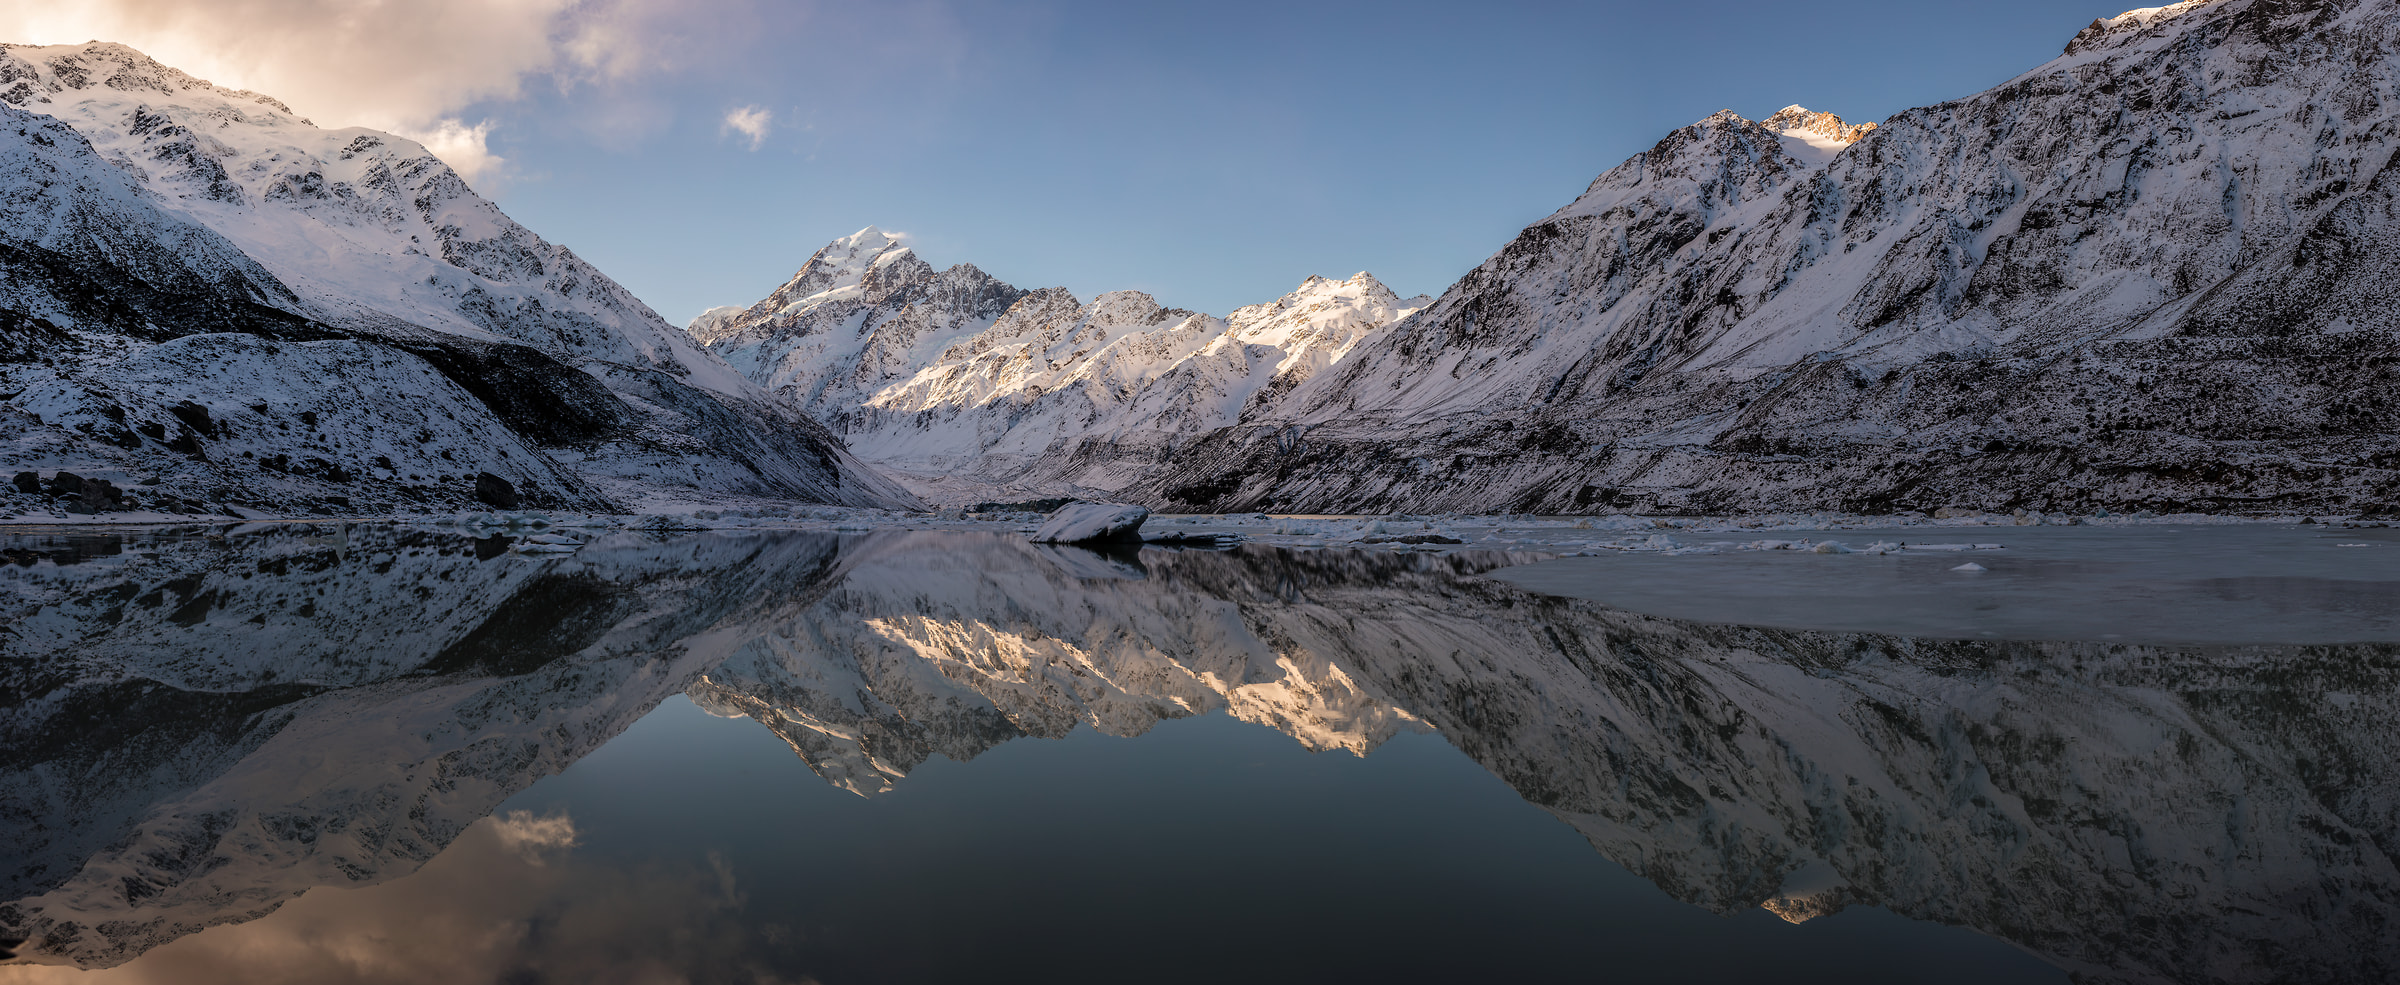 669 megapixels! A very high resolution, large-format VAST photo print of a frozen lake and mountains. Nature landscape mountain photo created by Chris Collacott at Mt Aoraki and Mt. Cook National Park